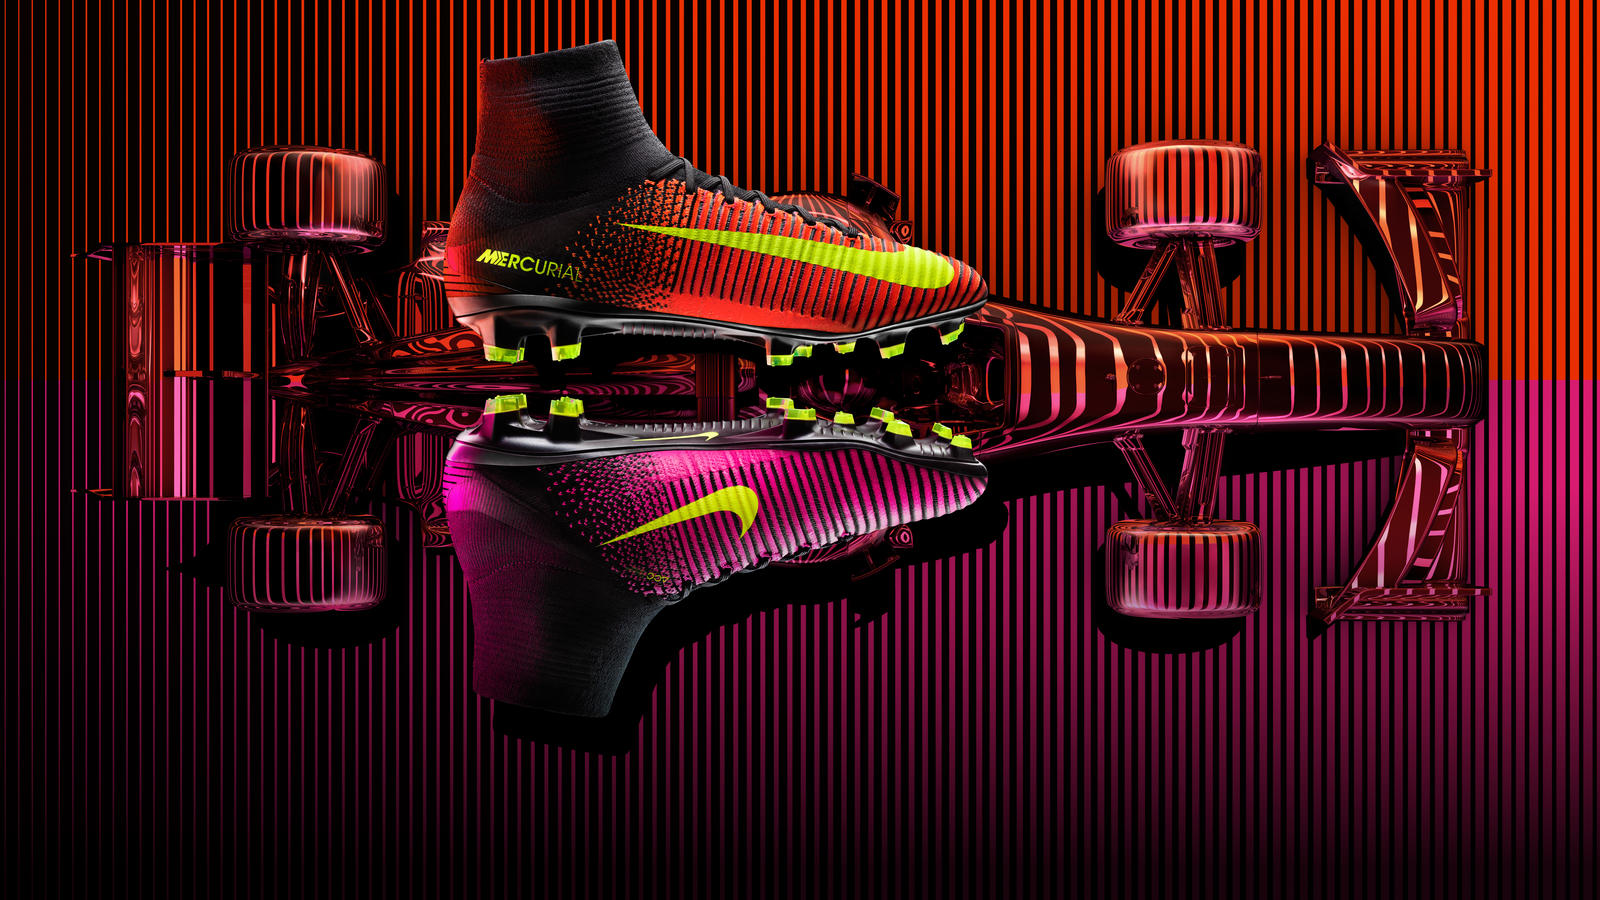 Fa16 fb mercurial superflyv 4x2 hd 1600